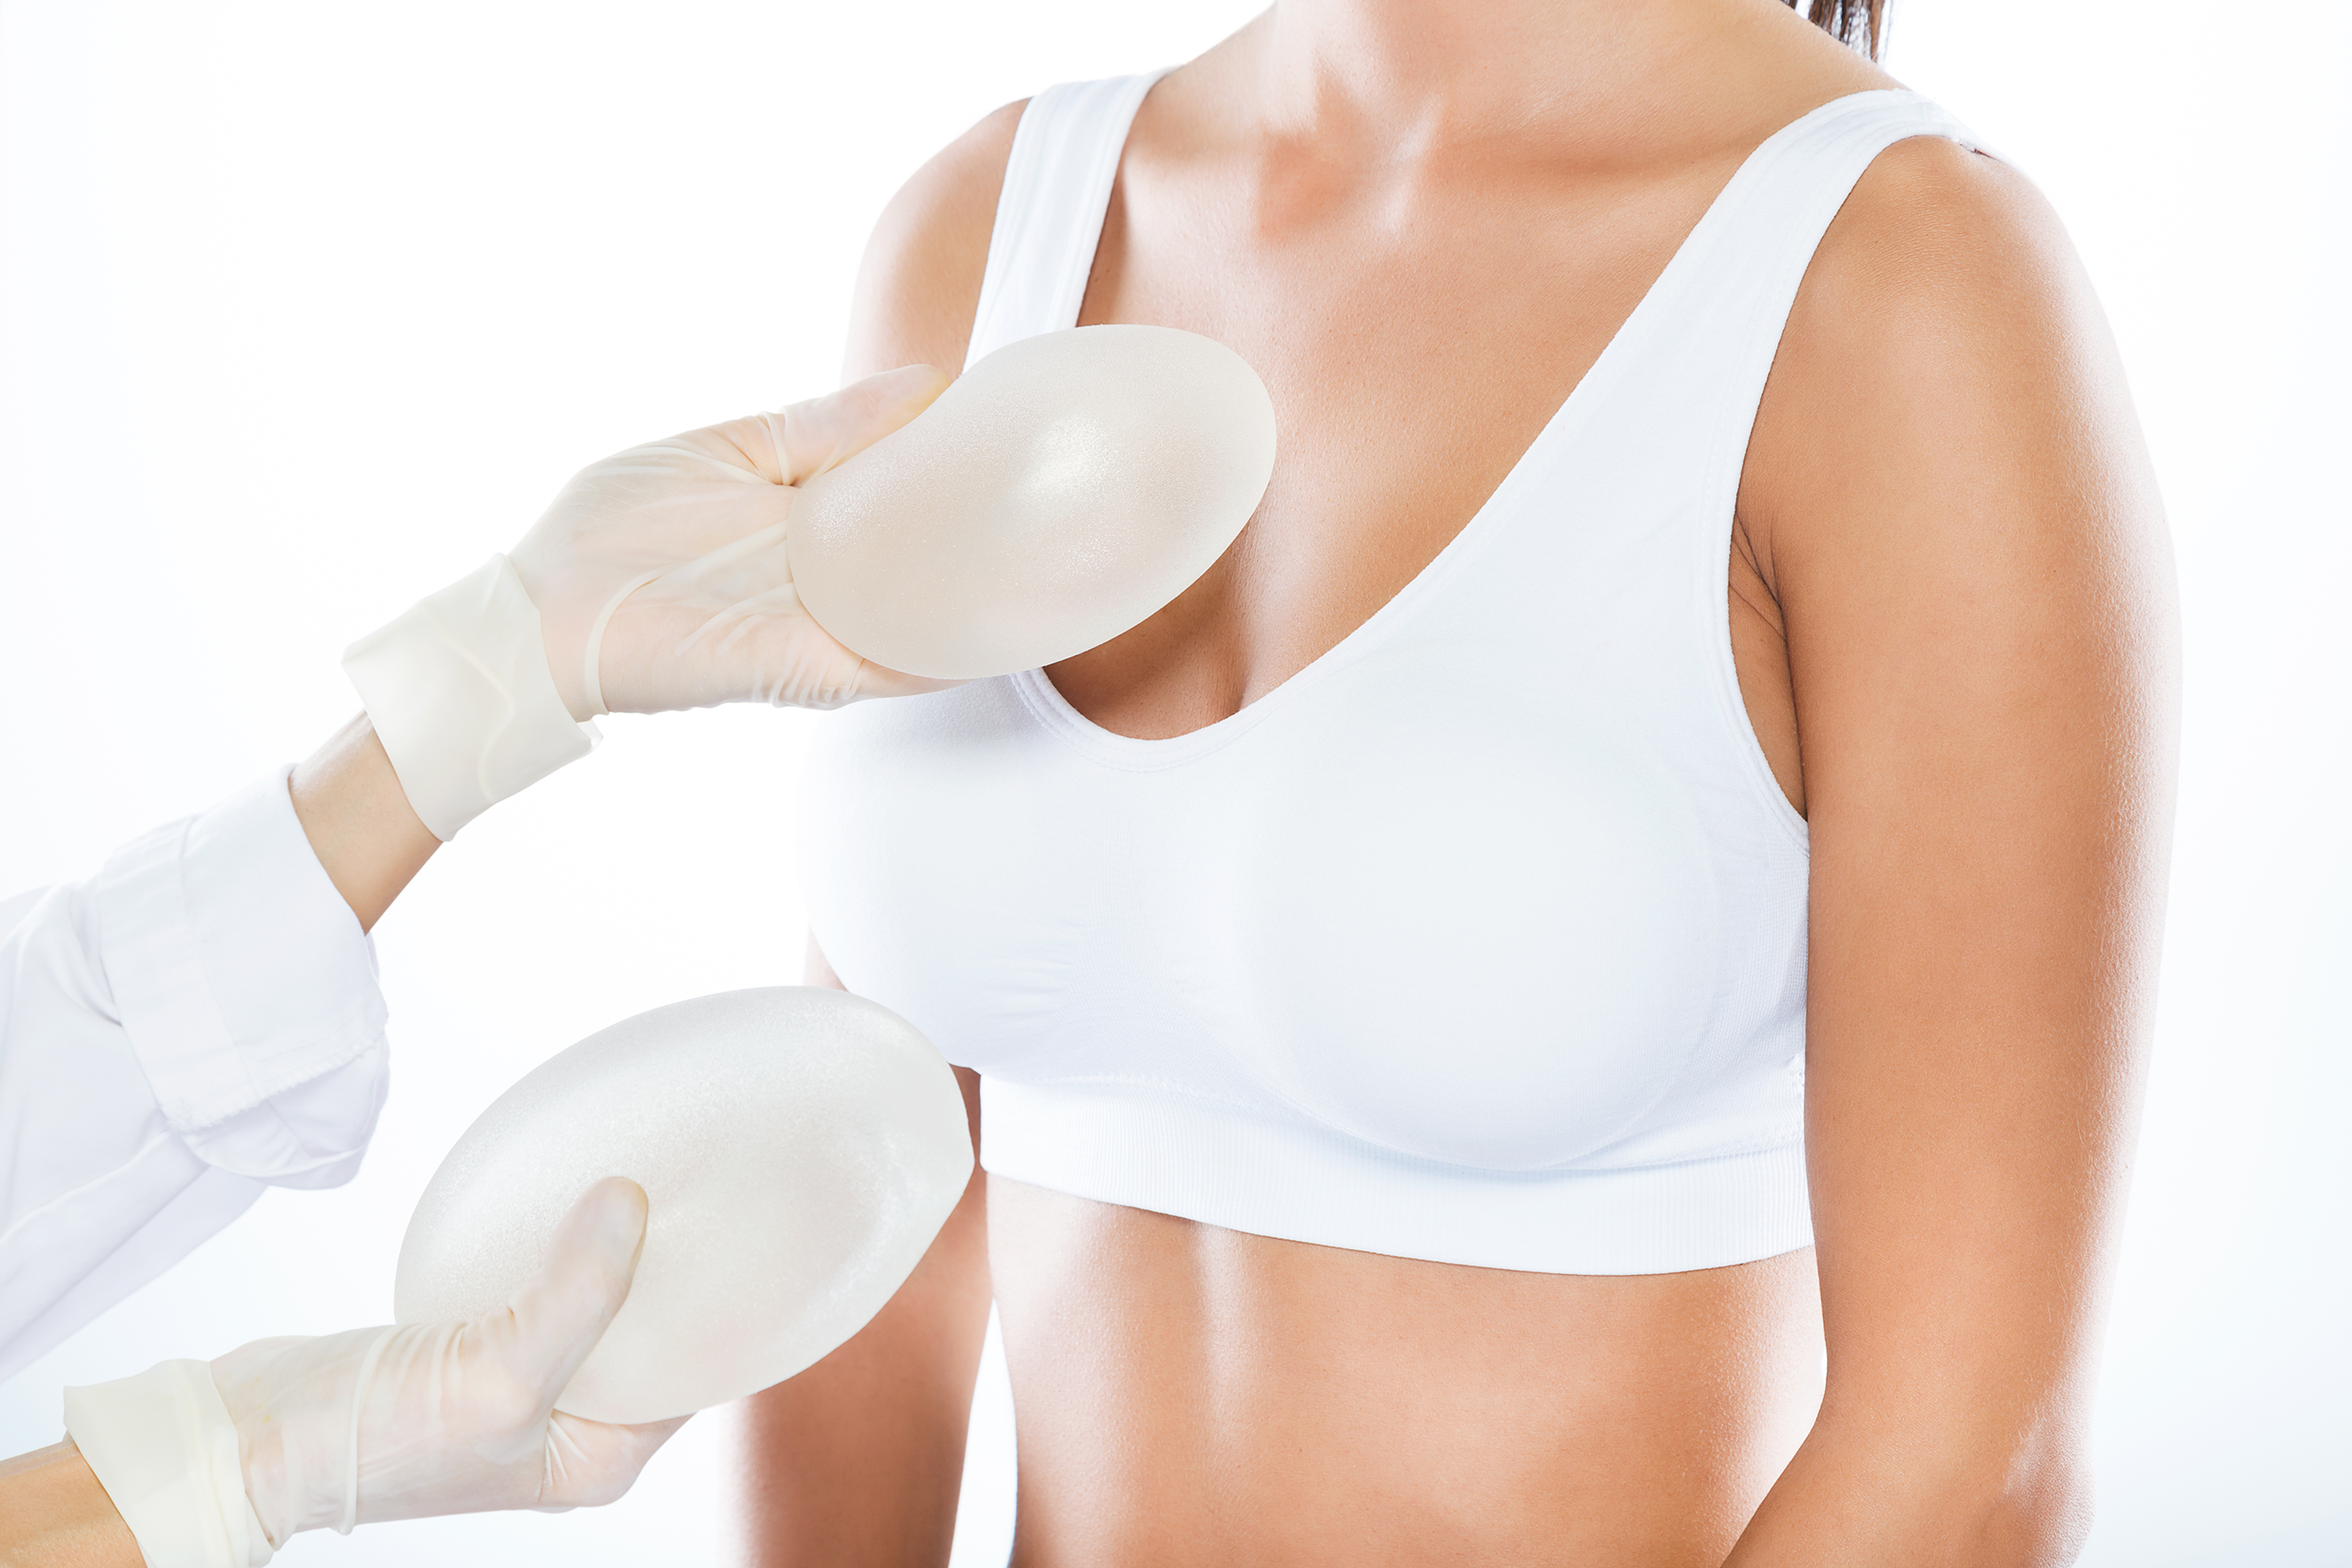 Why Wear Sports Bra After Breast Augmentation - CosmedicWest